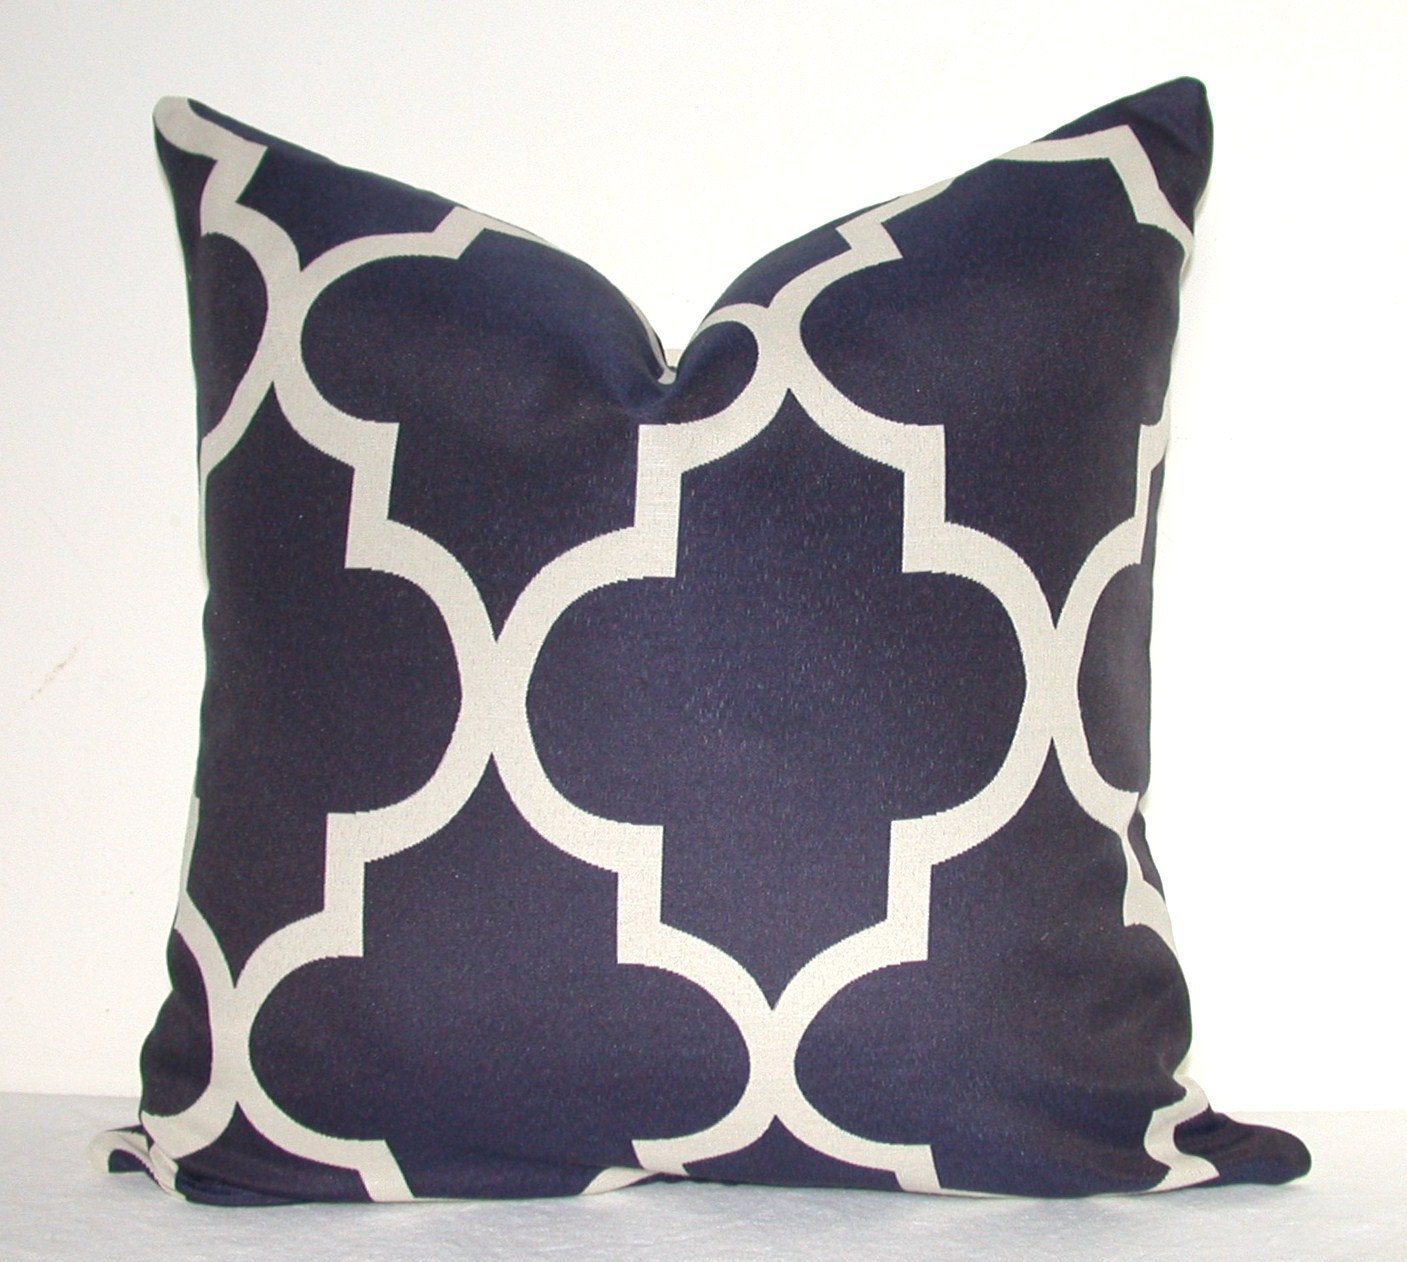 Throw Pillows For Navy Blue Couch : A PAIR of Pillow Covers Decorative Pillows Sofa by kyoozi